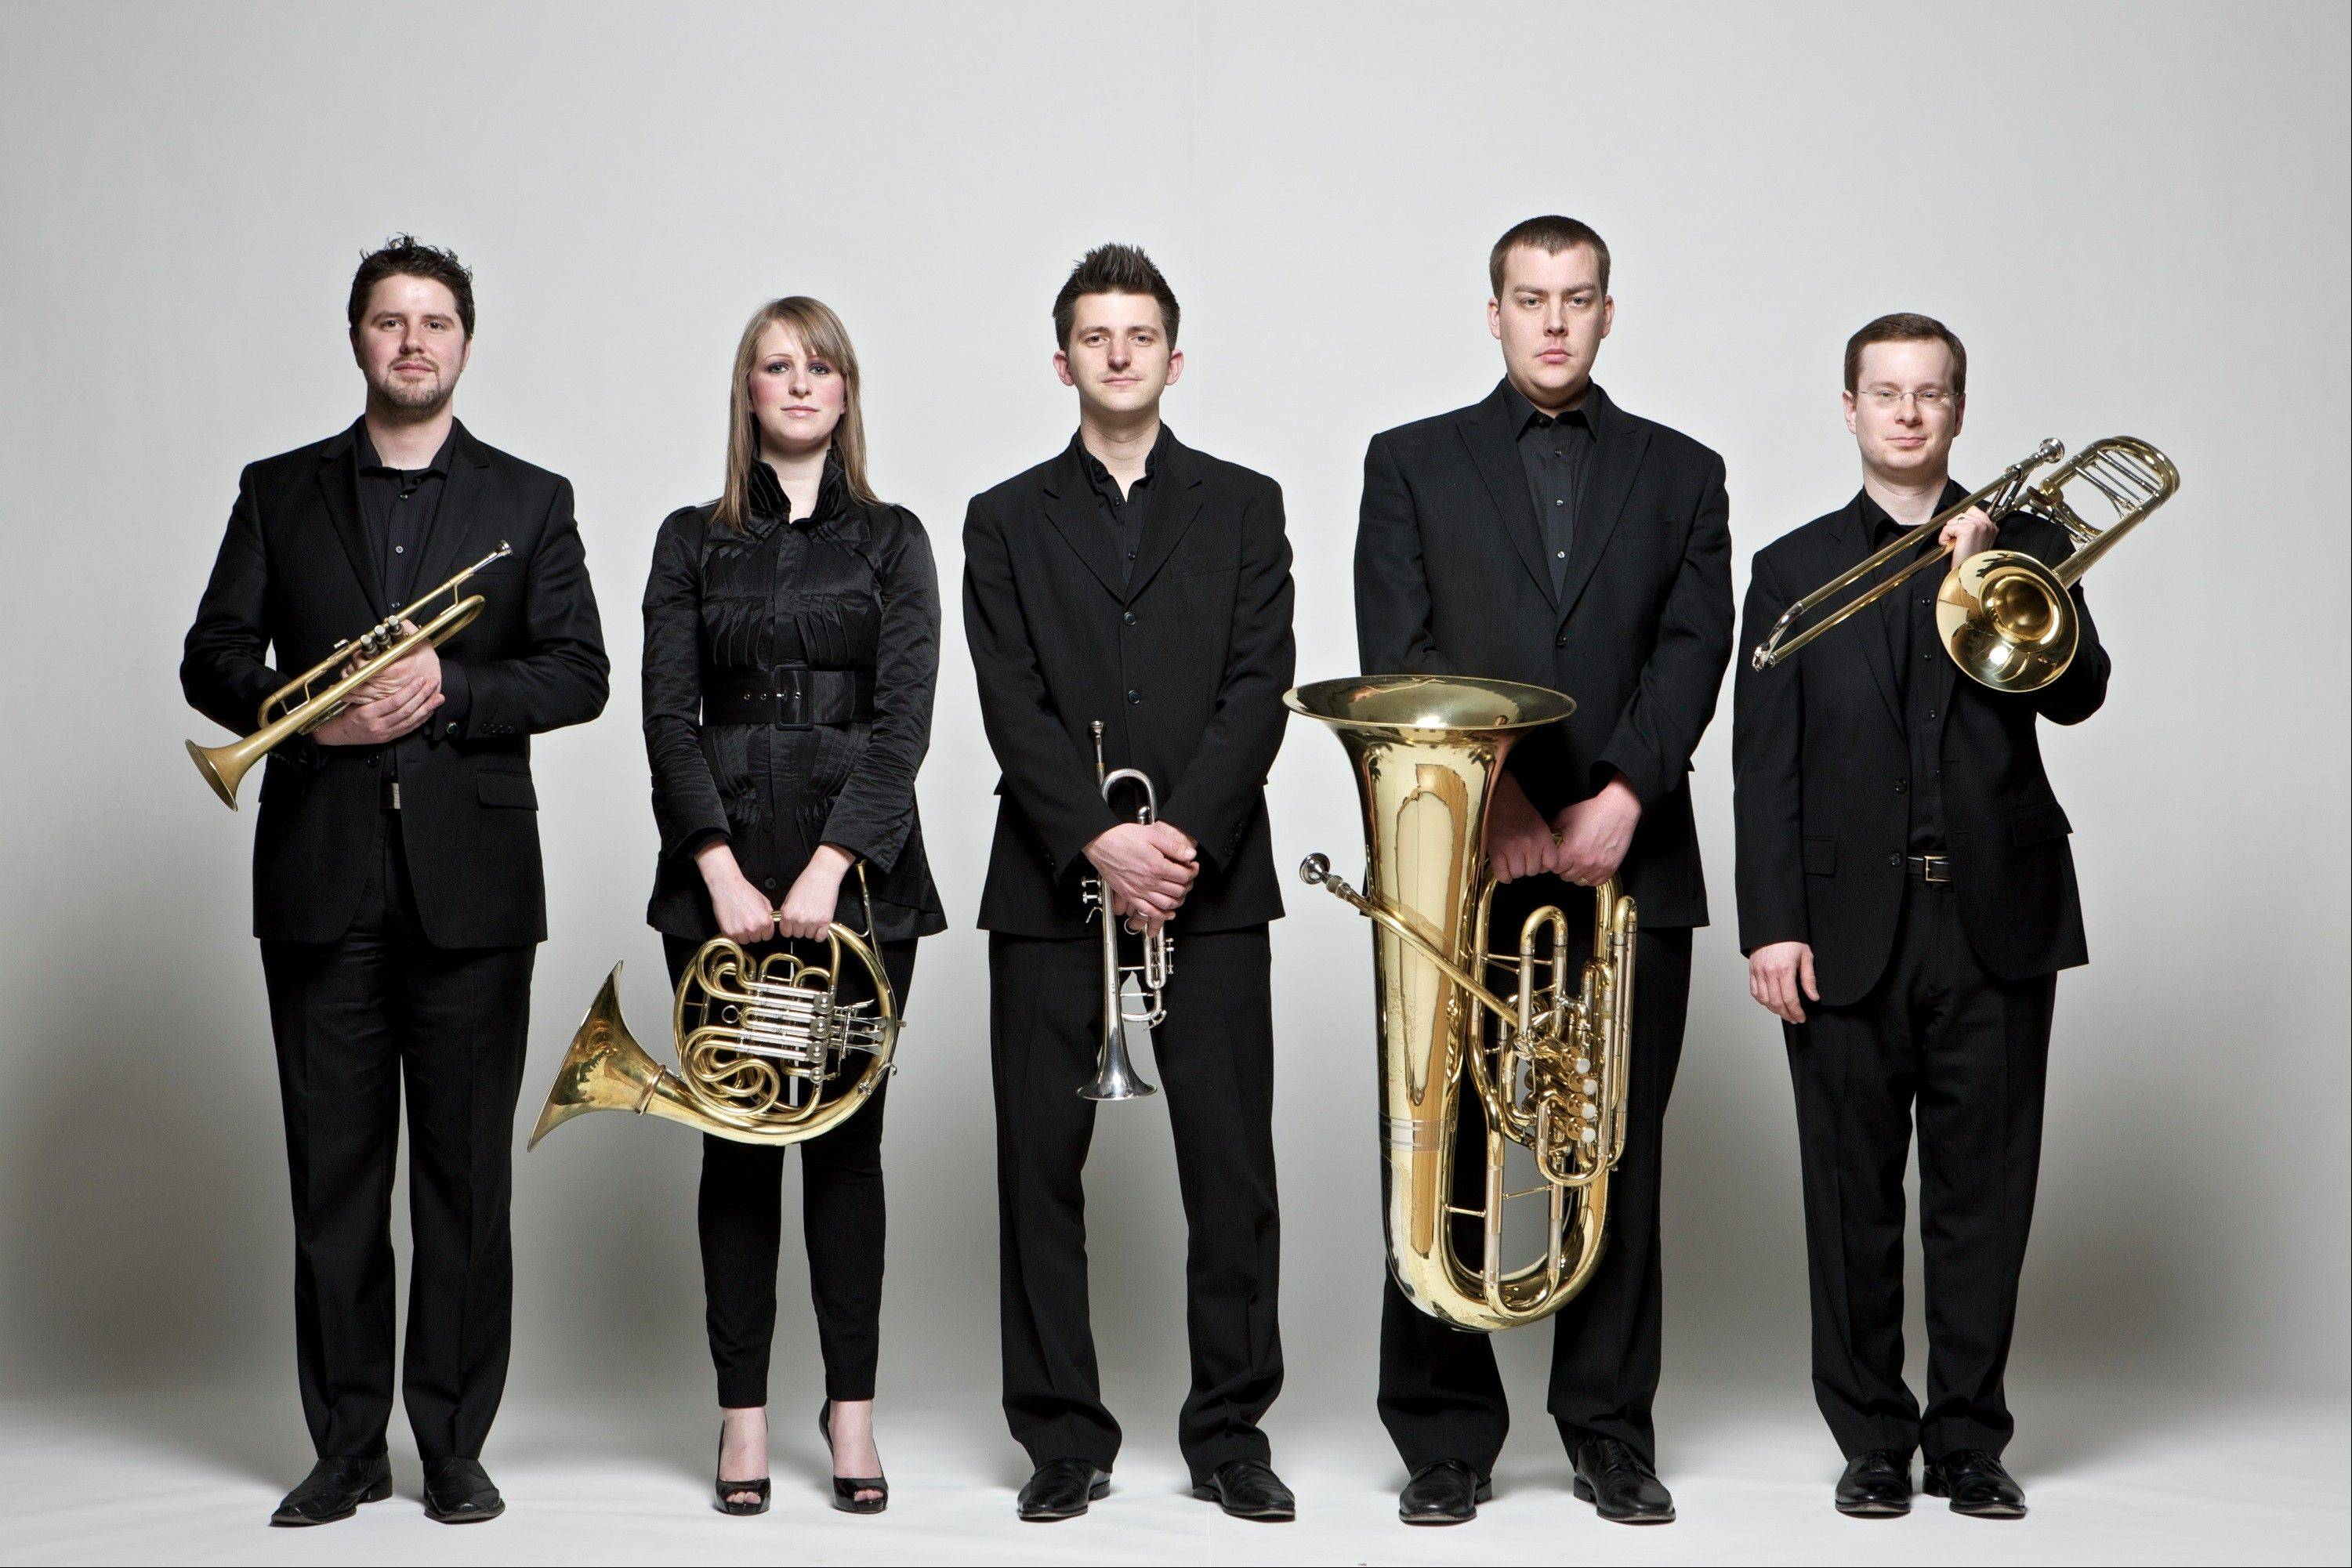 Courtesy of the Gaudete Brass QuintetThe Gaudete Brass Quintet presents an afternoon concert of brass chamber music on Sunday, Dec. 16, at the Byron Colby Barn at Prairie Crossing in Grayslake.